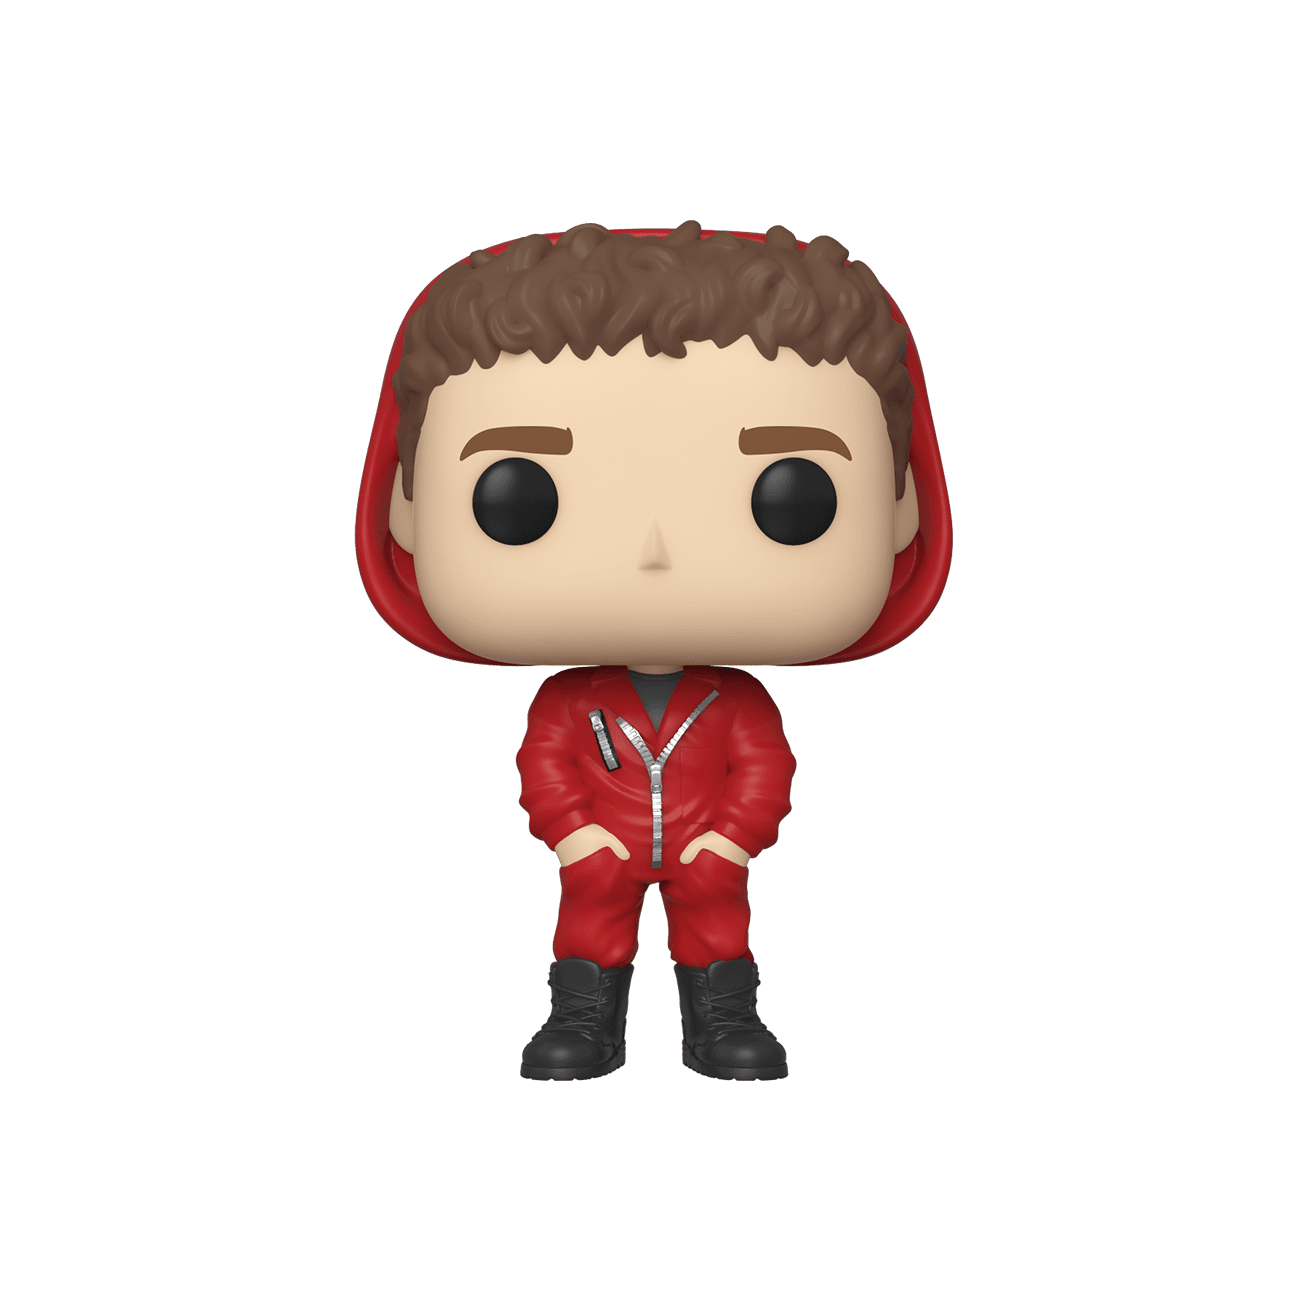 La Casa de Papel! Rio Funko Pop! Figure - 4th Batch